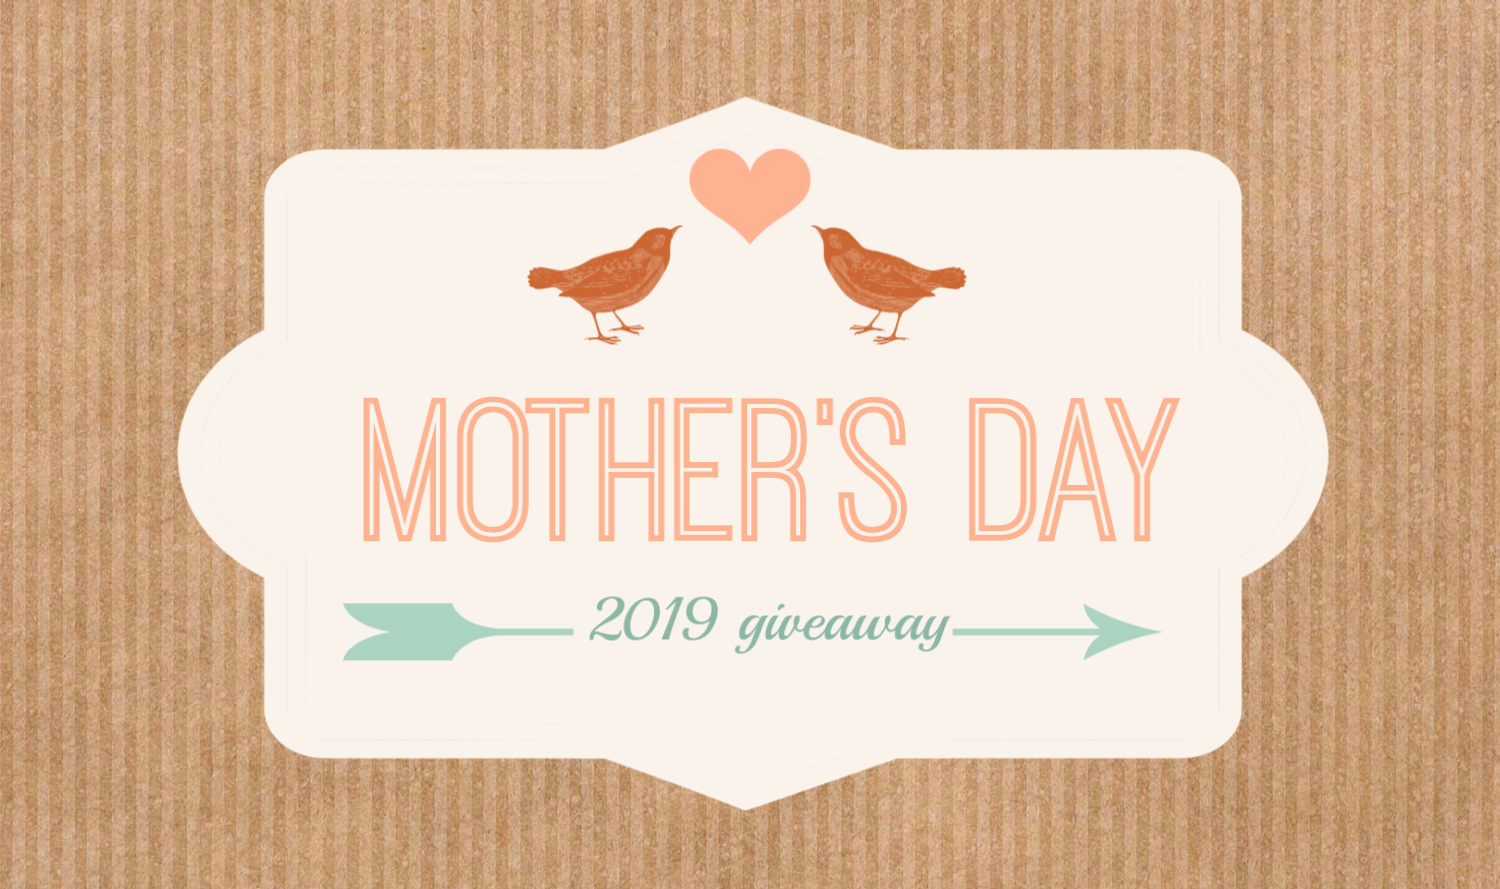 Mother's Day 2019 Giveaway